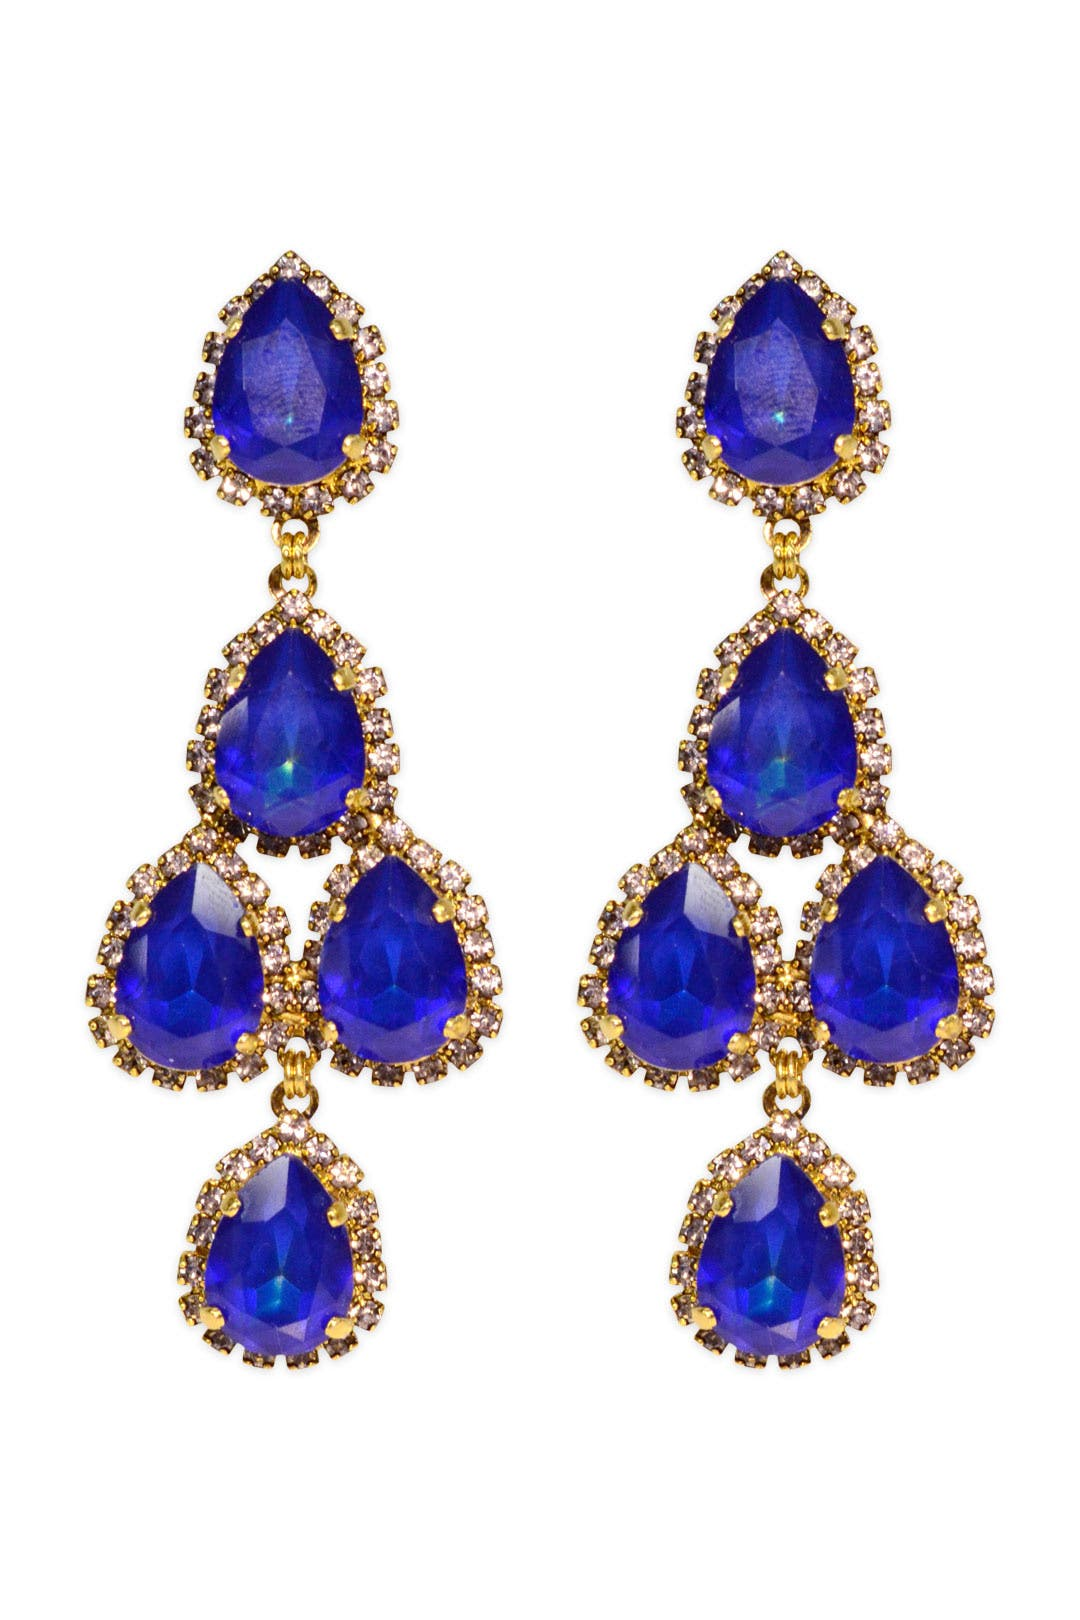 Royal Blue Duchess Earring by Erickson Beamon